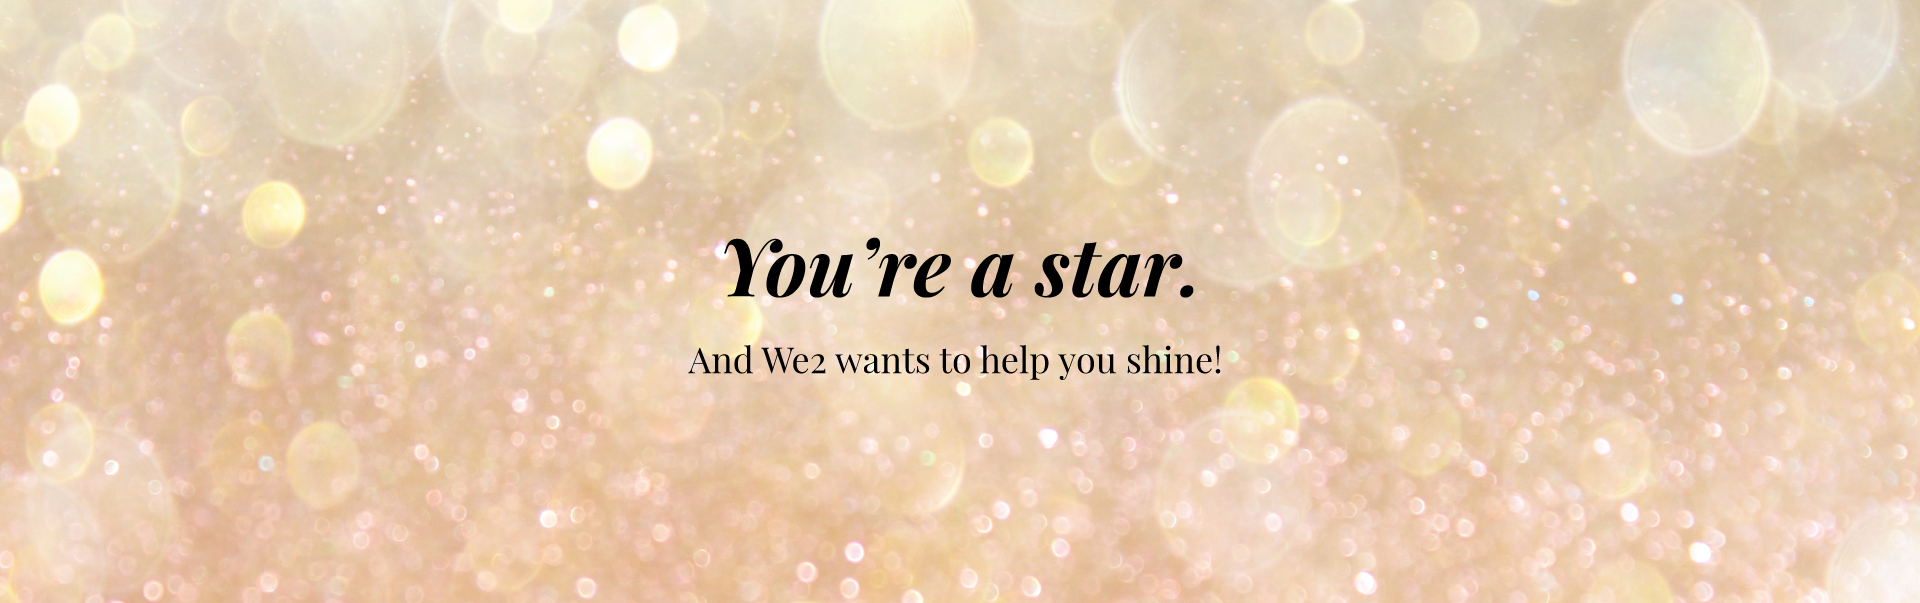 You're a star. And We2 wants to help you shine!